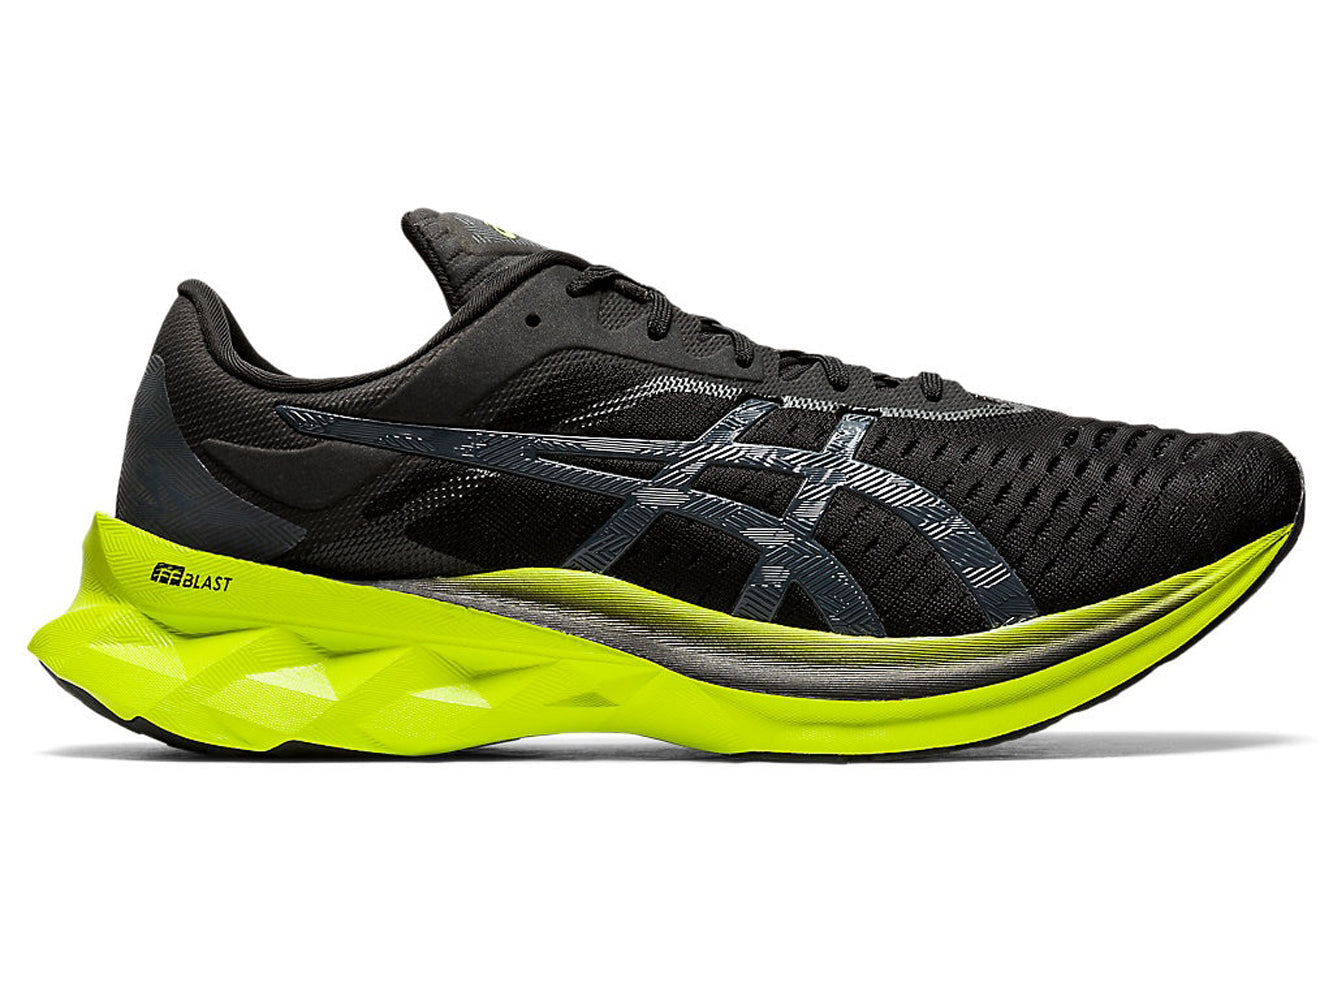 Men's Asics Novablast Running Shoe in Black/Lime Zest from the side